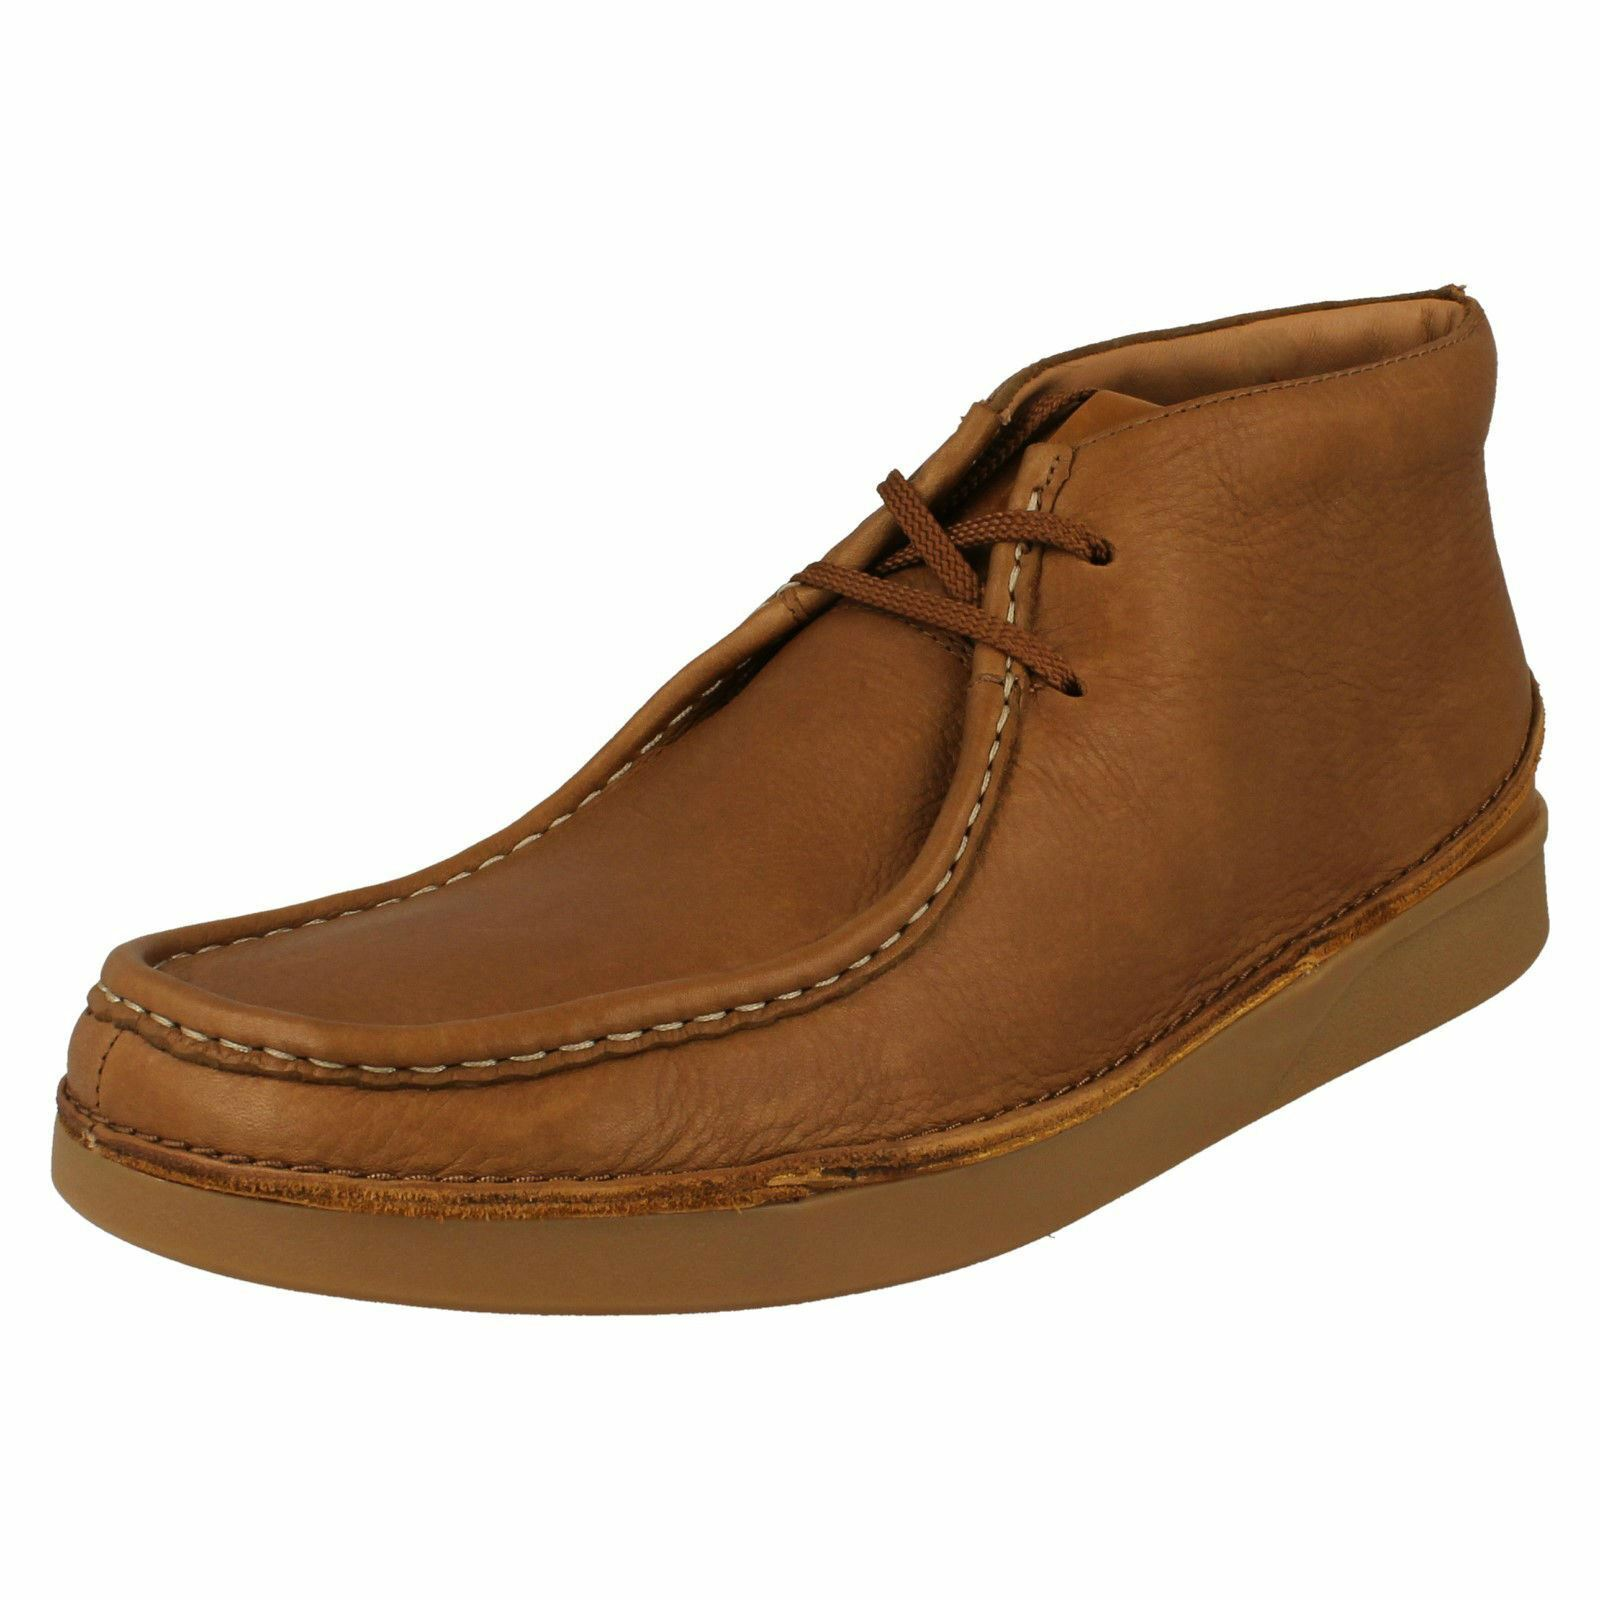 Mens Clarks Rounded Toe Casual Lace Up Leather Ankle Boots Oakland Mid